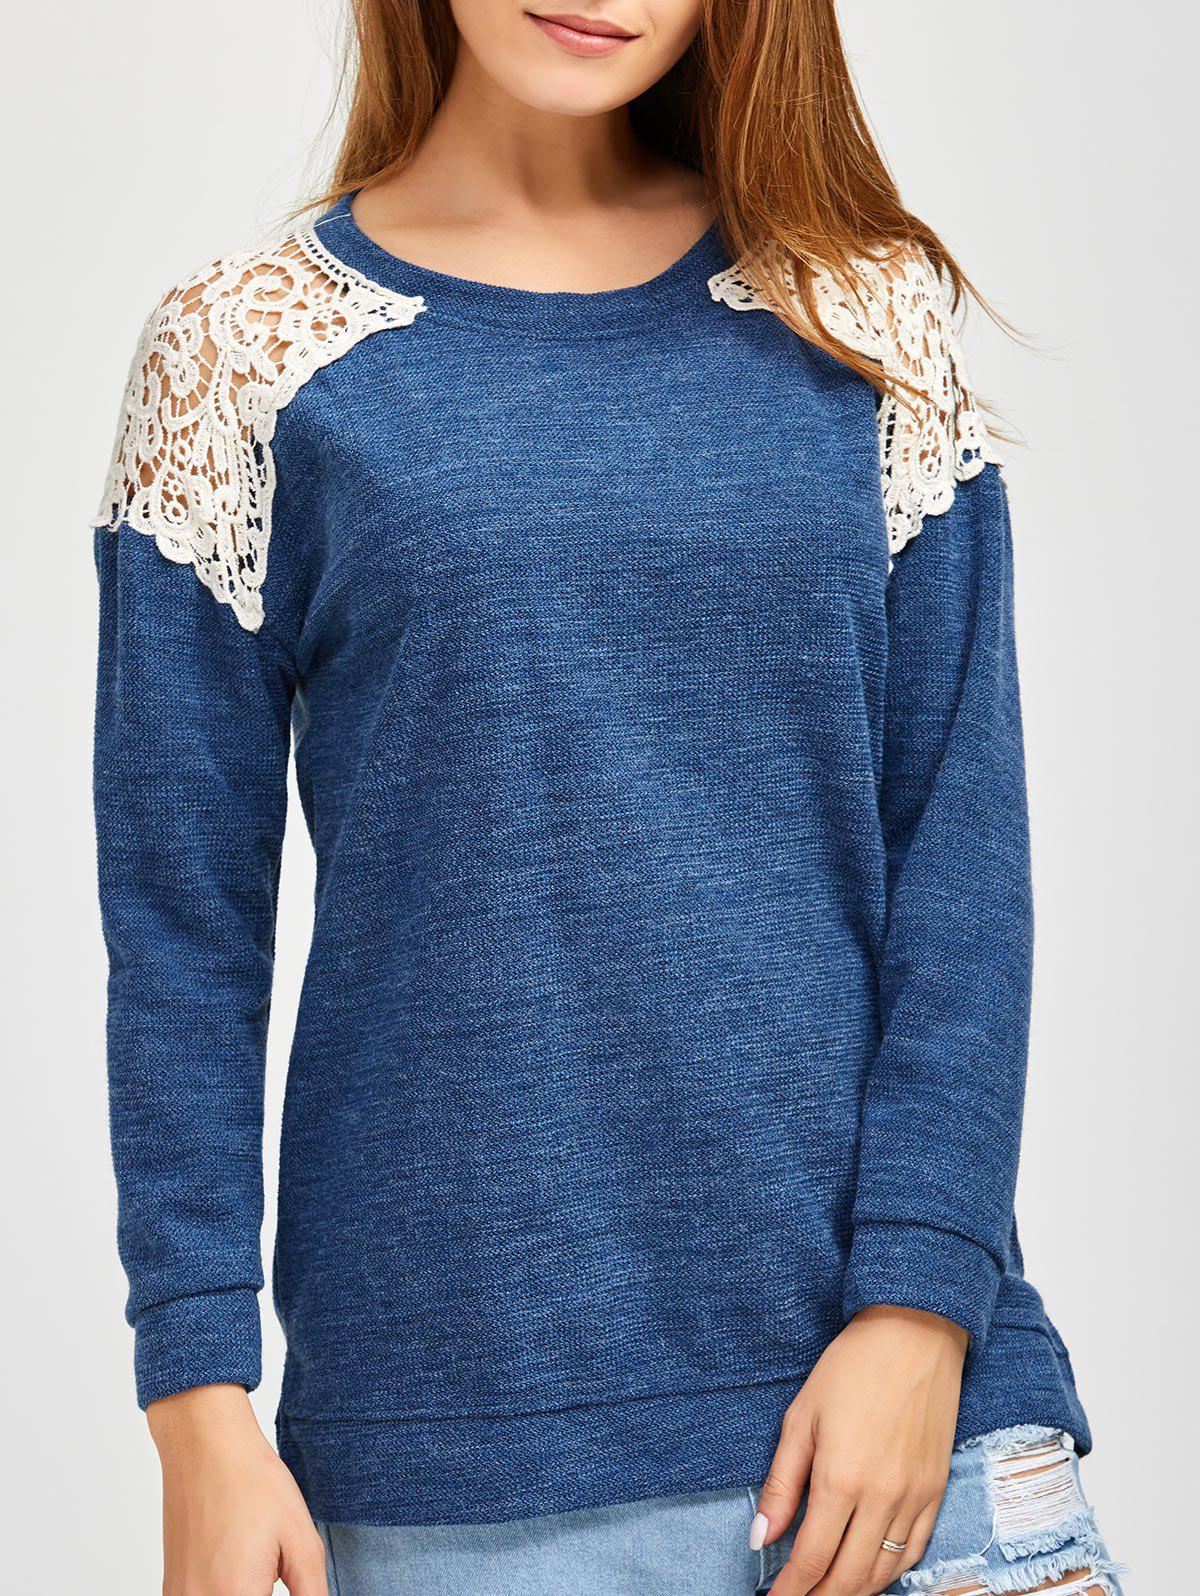 Slit Lace Spliced Loose Sweater - BLUE S